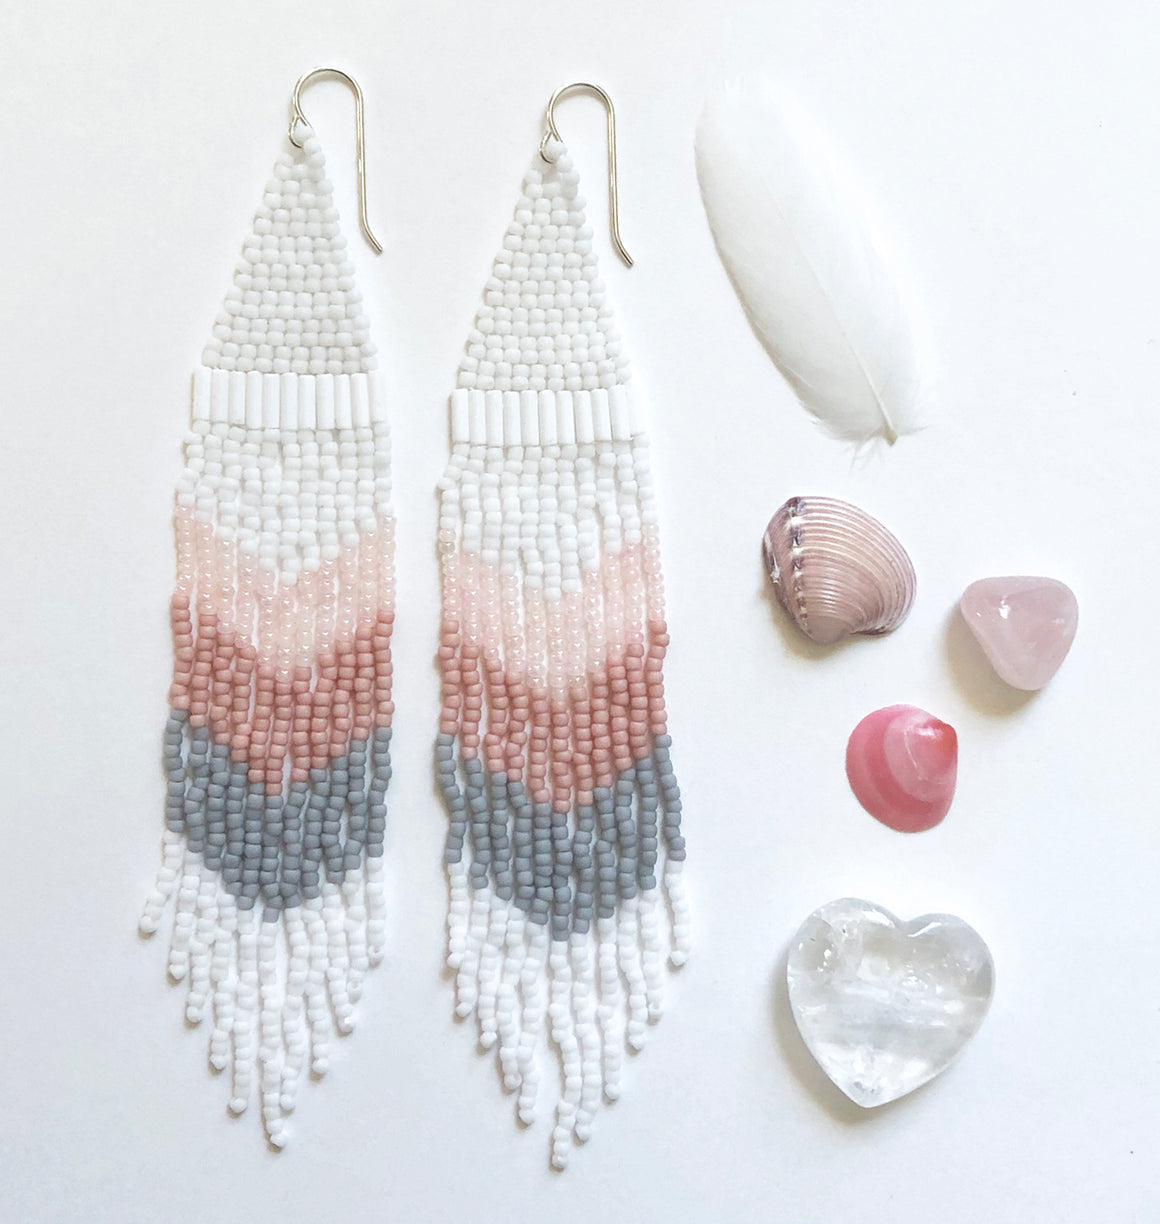 Extra long Handmade Seed Bead Fringe Earrings in chevron pattern with shimmering blush vintage beads and matte white gray and pink.